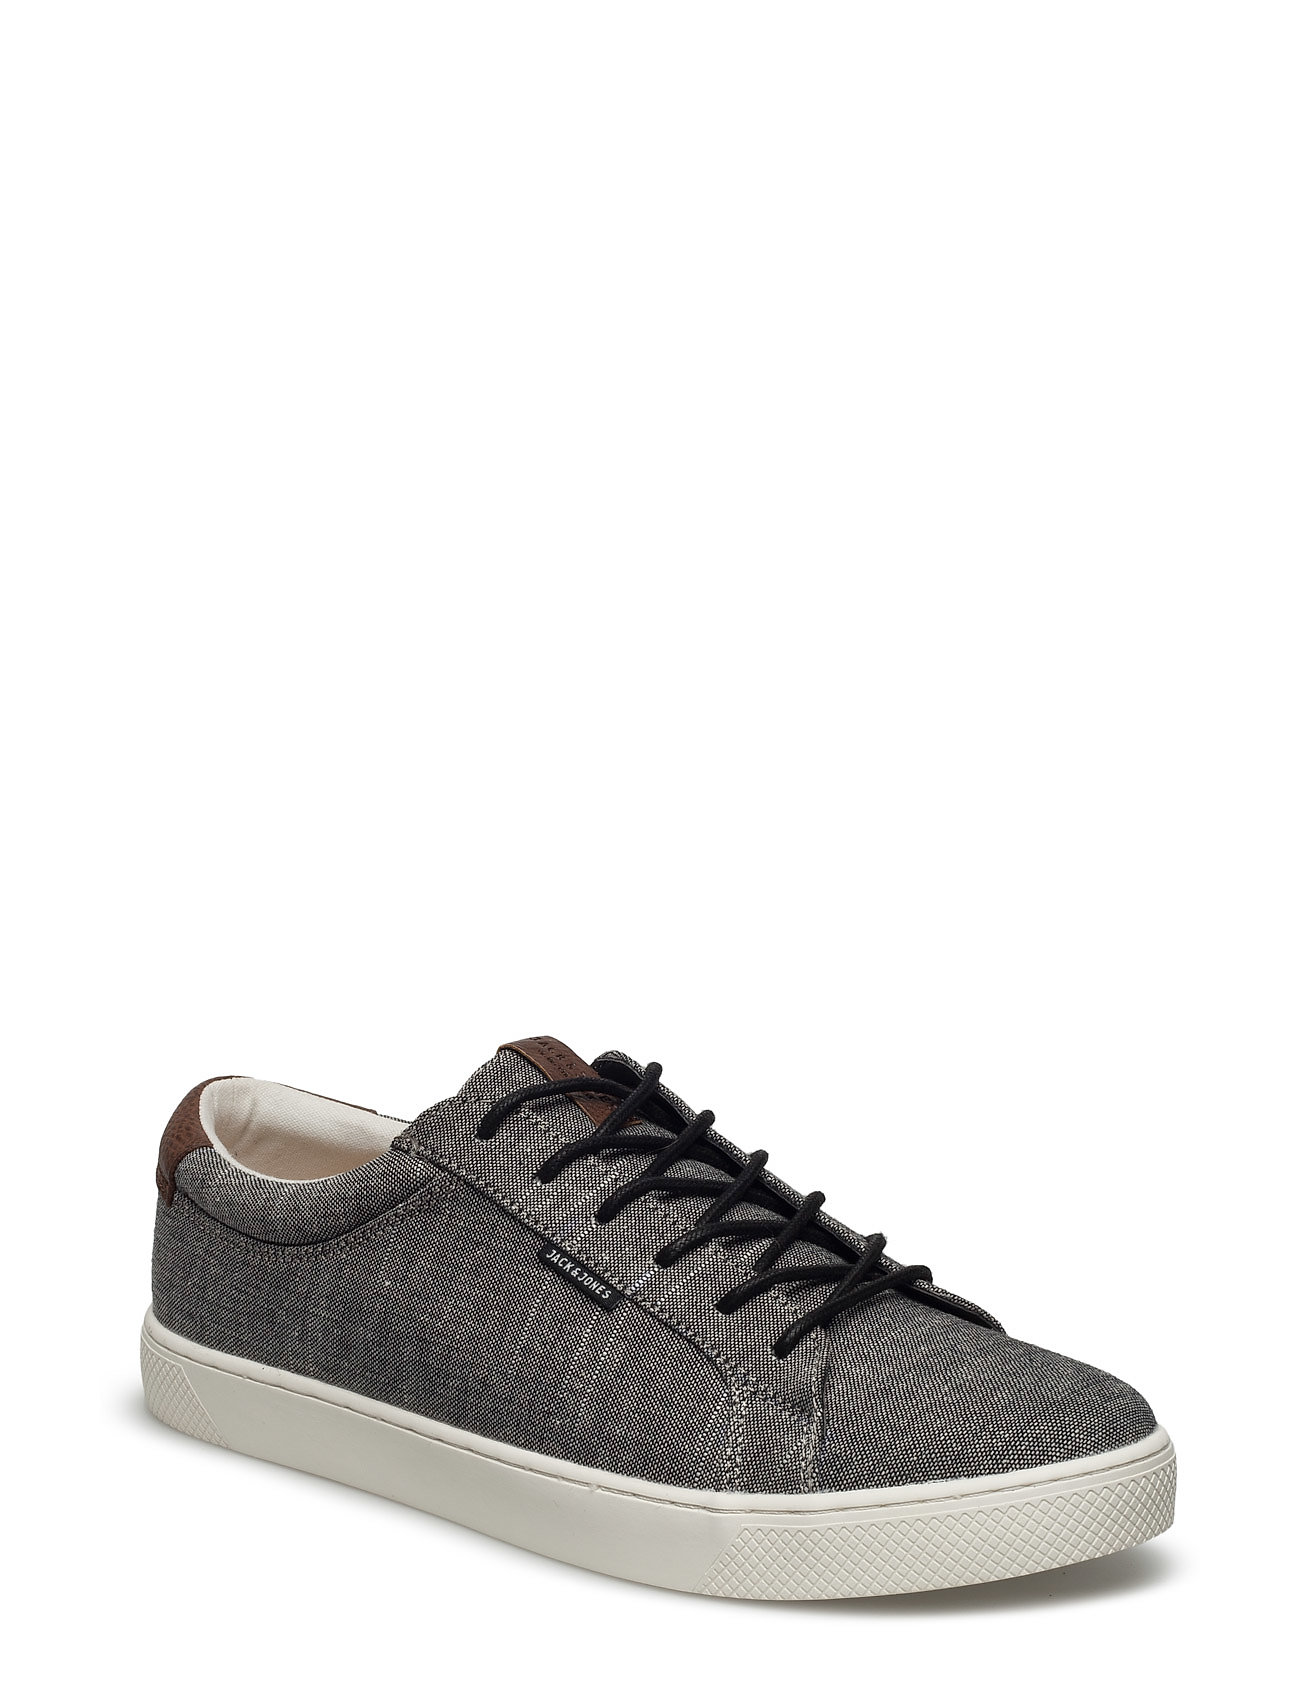 Jfwsable Textile Anthracite Jack & Jones Sneakers til Herrer i Antracit grå